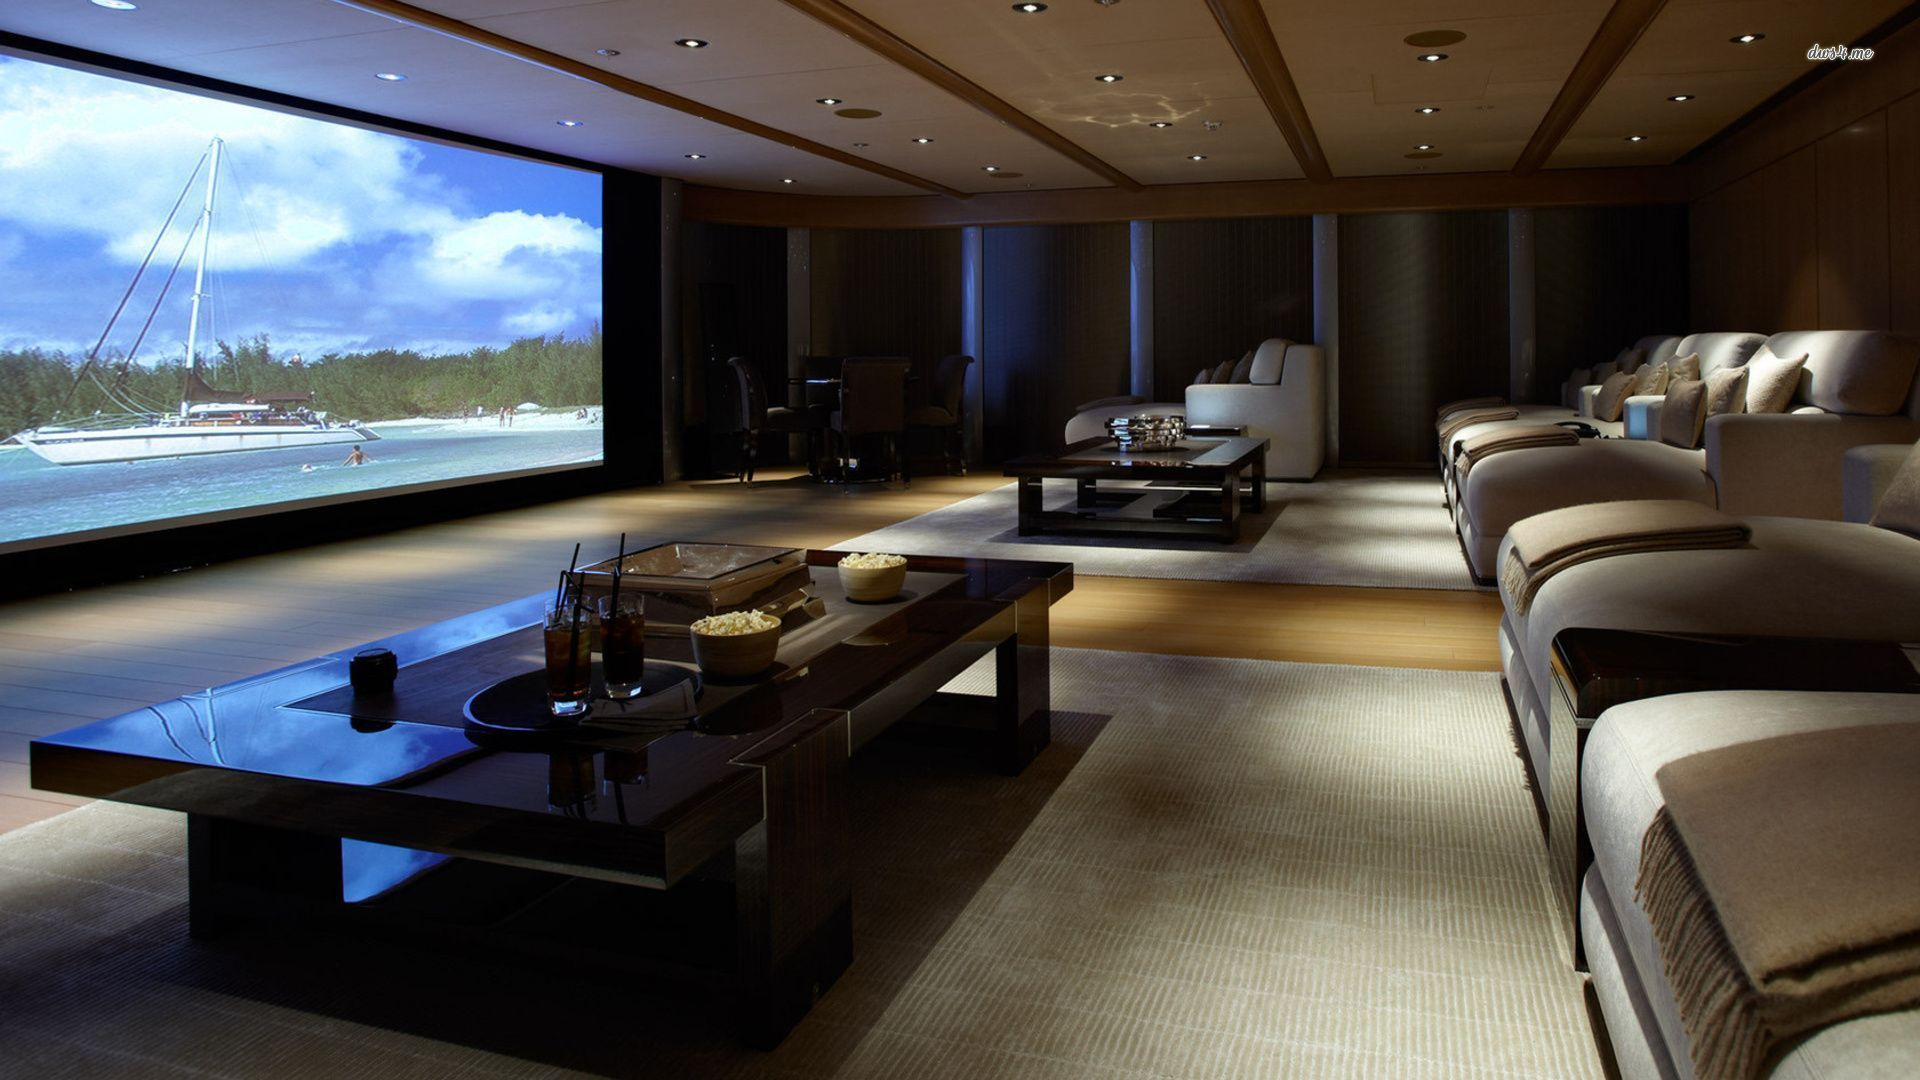 Home Theater Wallpapers Top Free Home Theater Backgrounds Wallpaperaccess